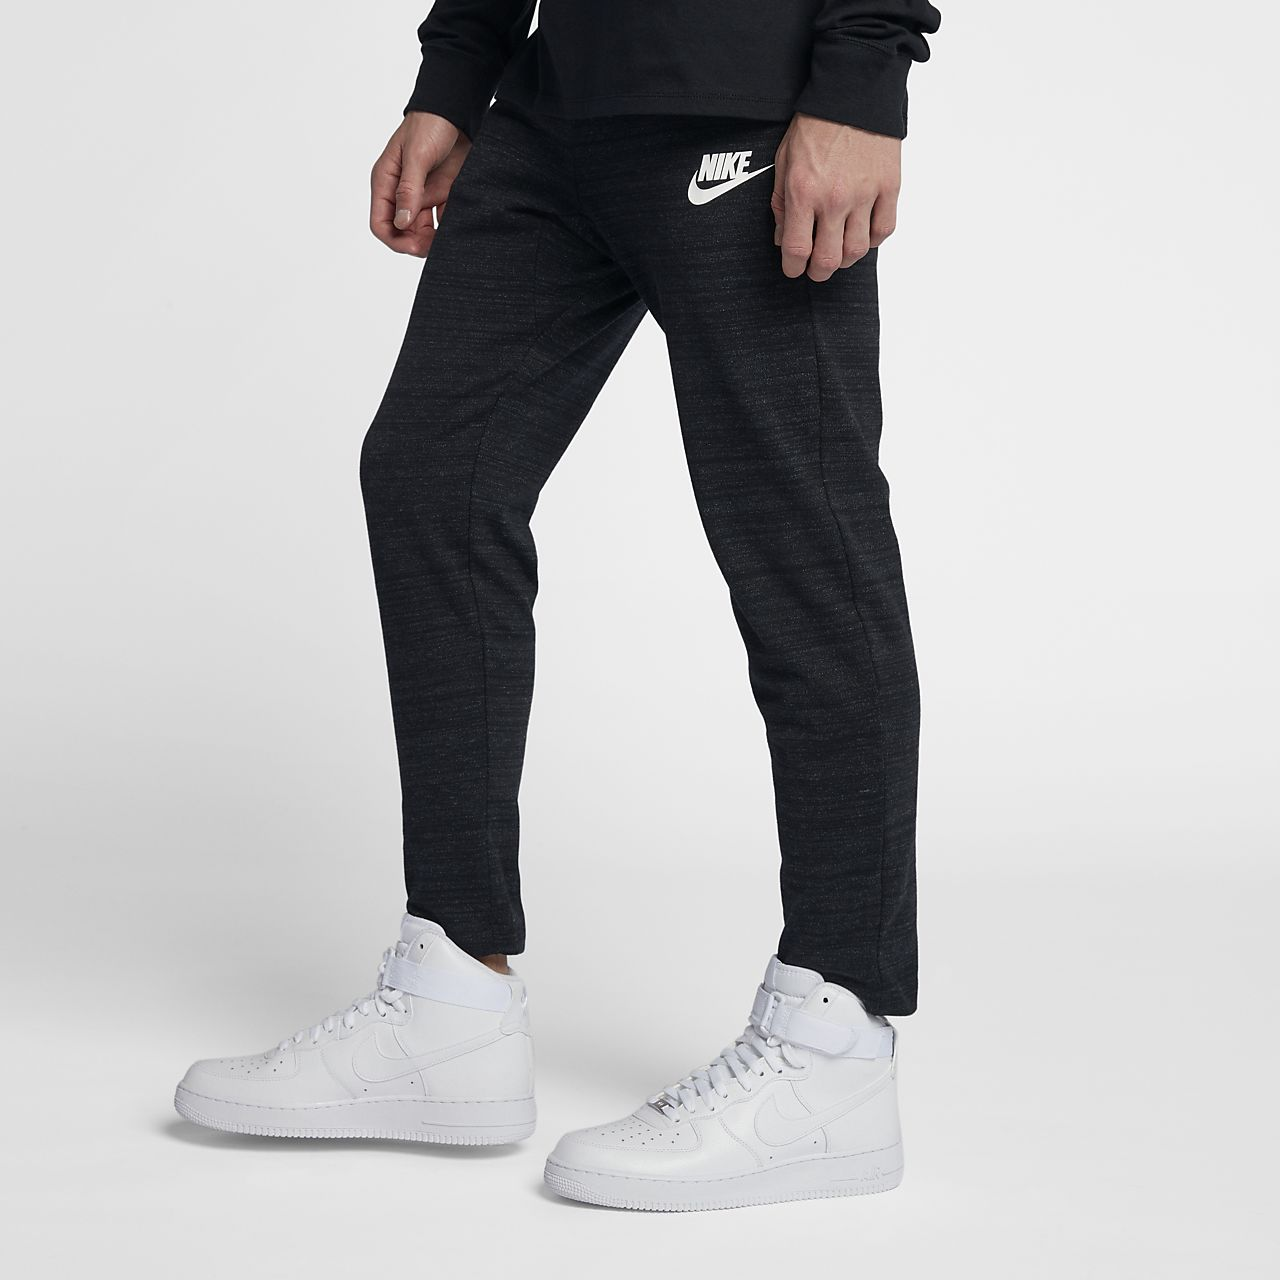 Nike Sportswear Advance 15 Men's Pants